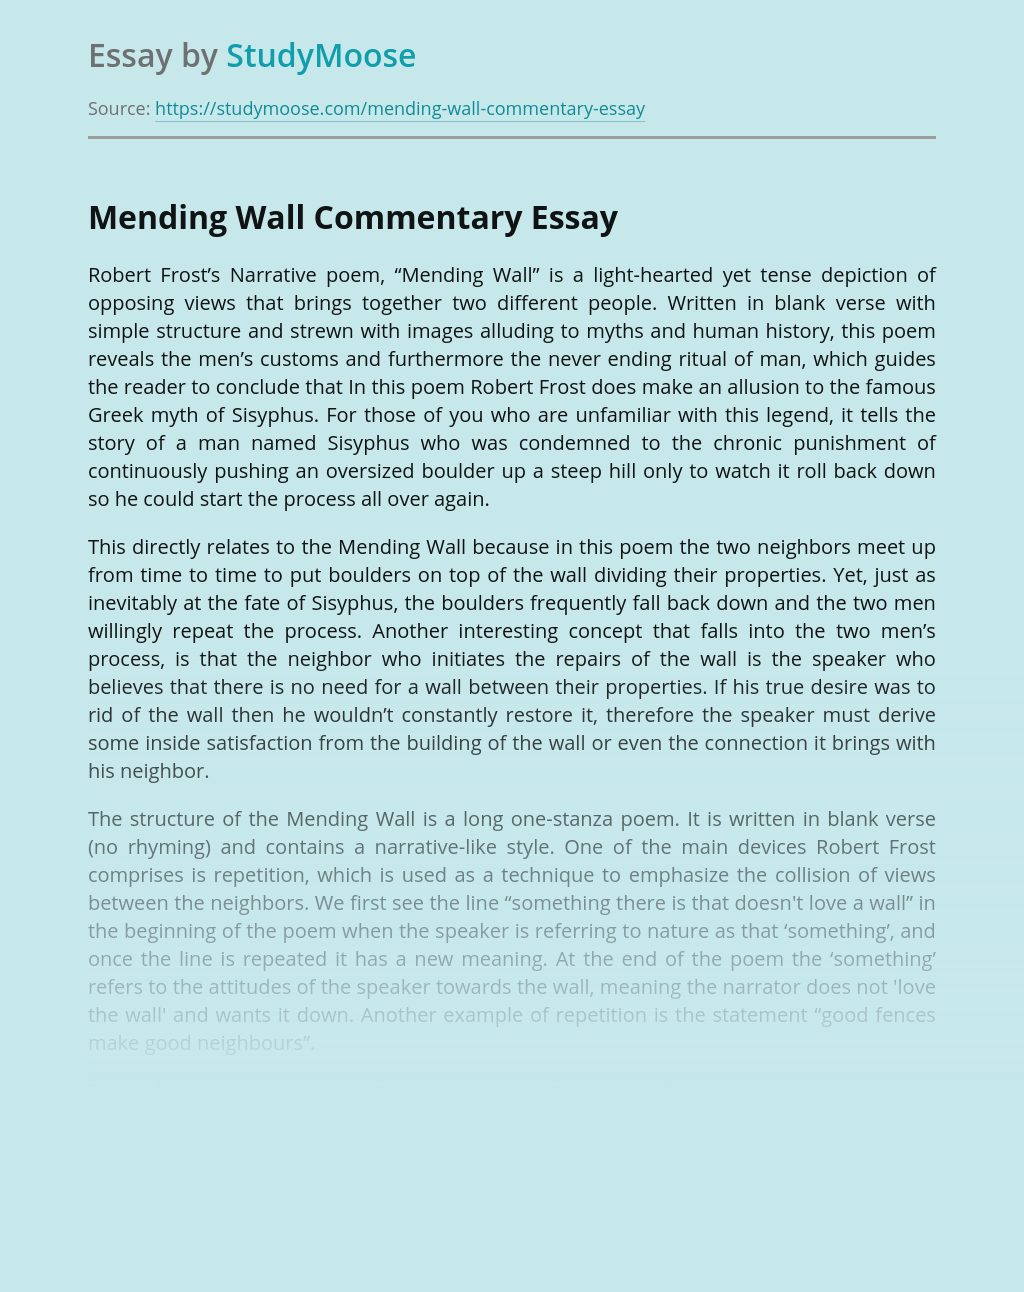 Mending Wall Commentary